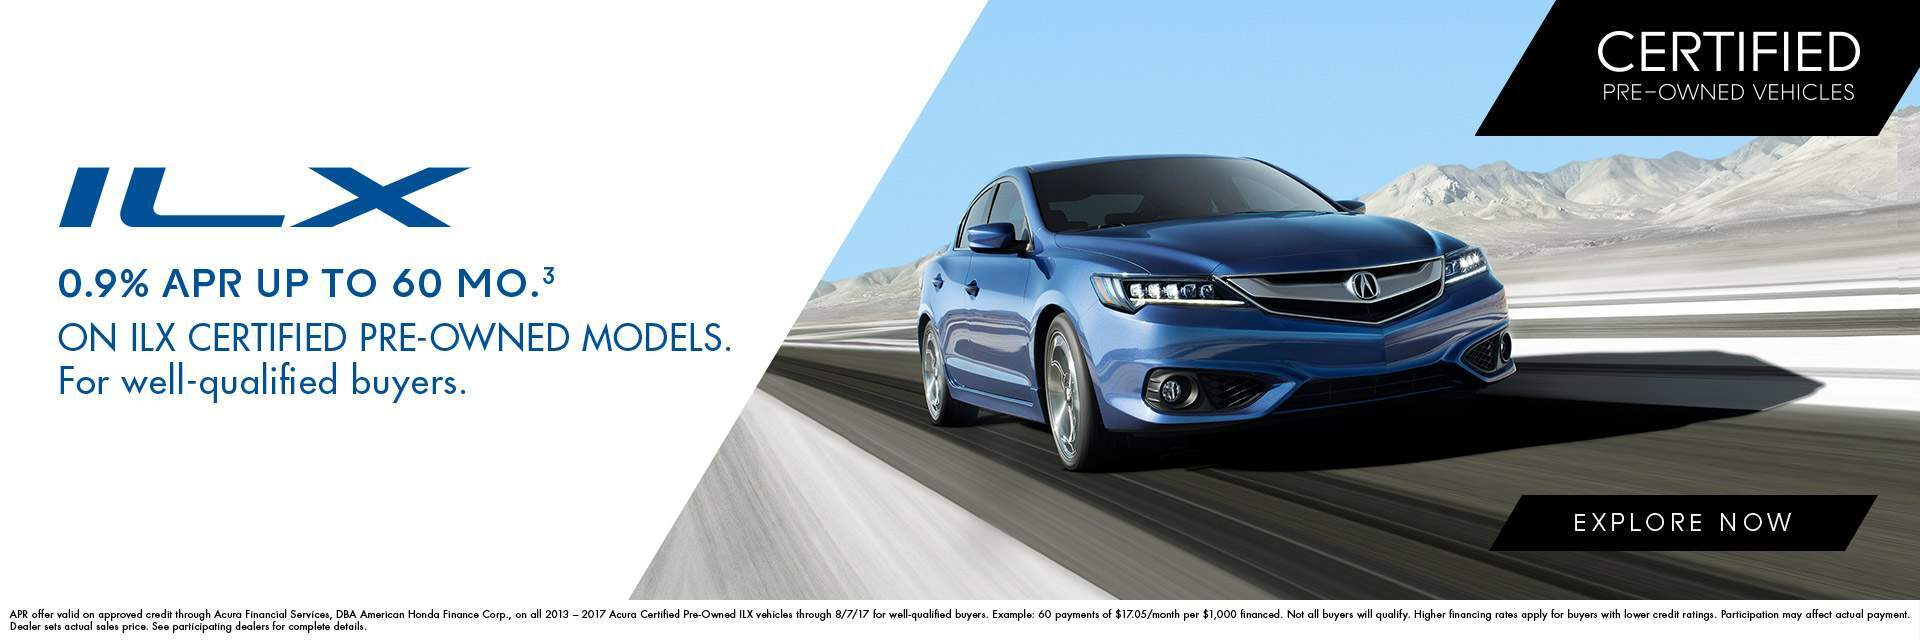 Certified Pre-Owned ILX